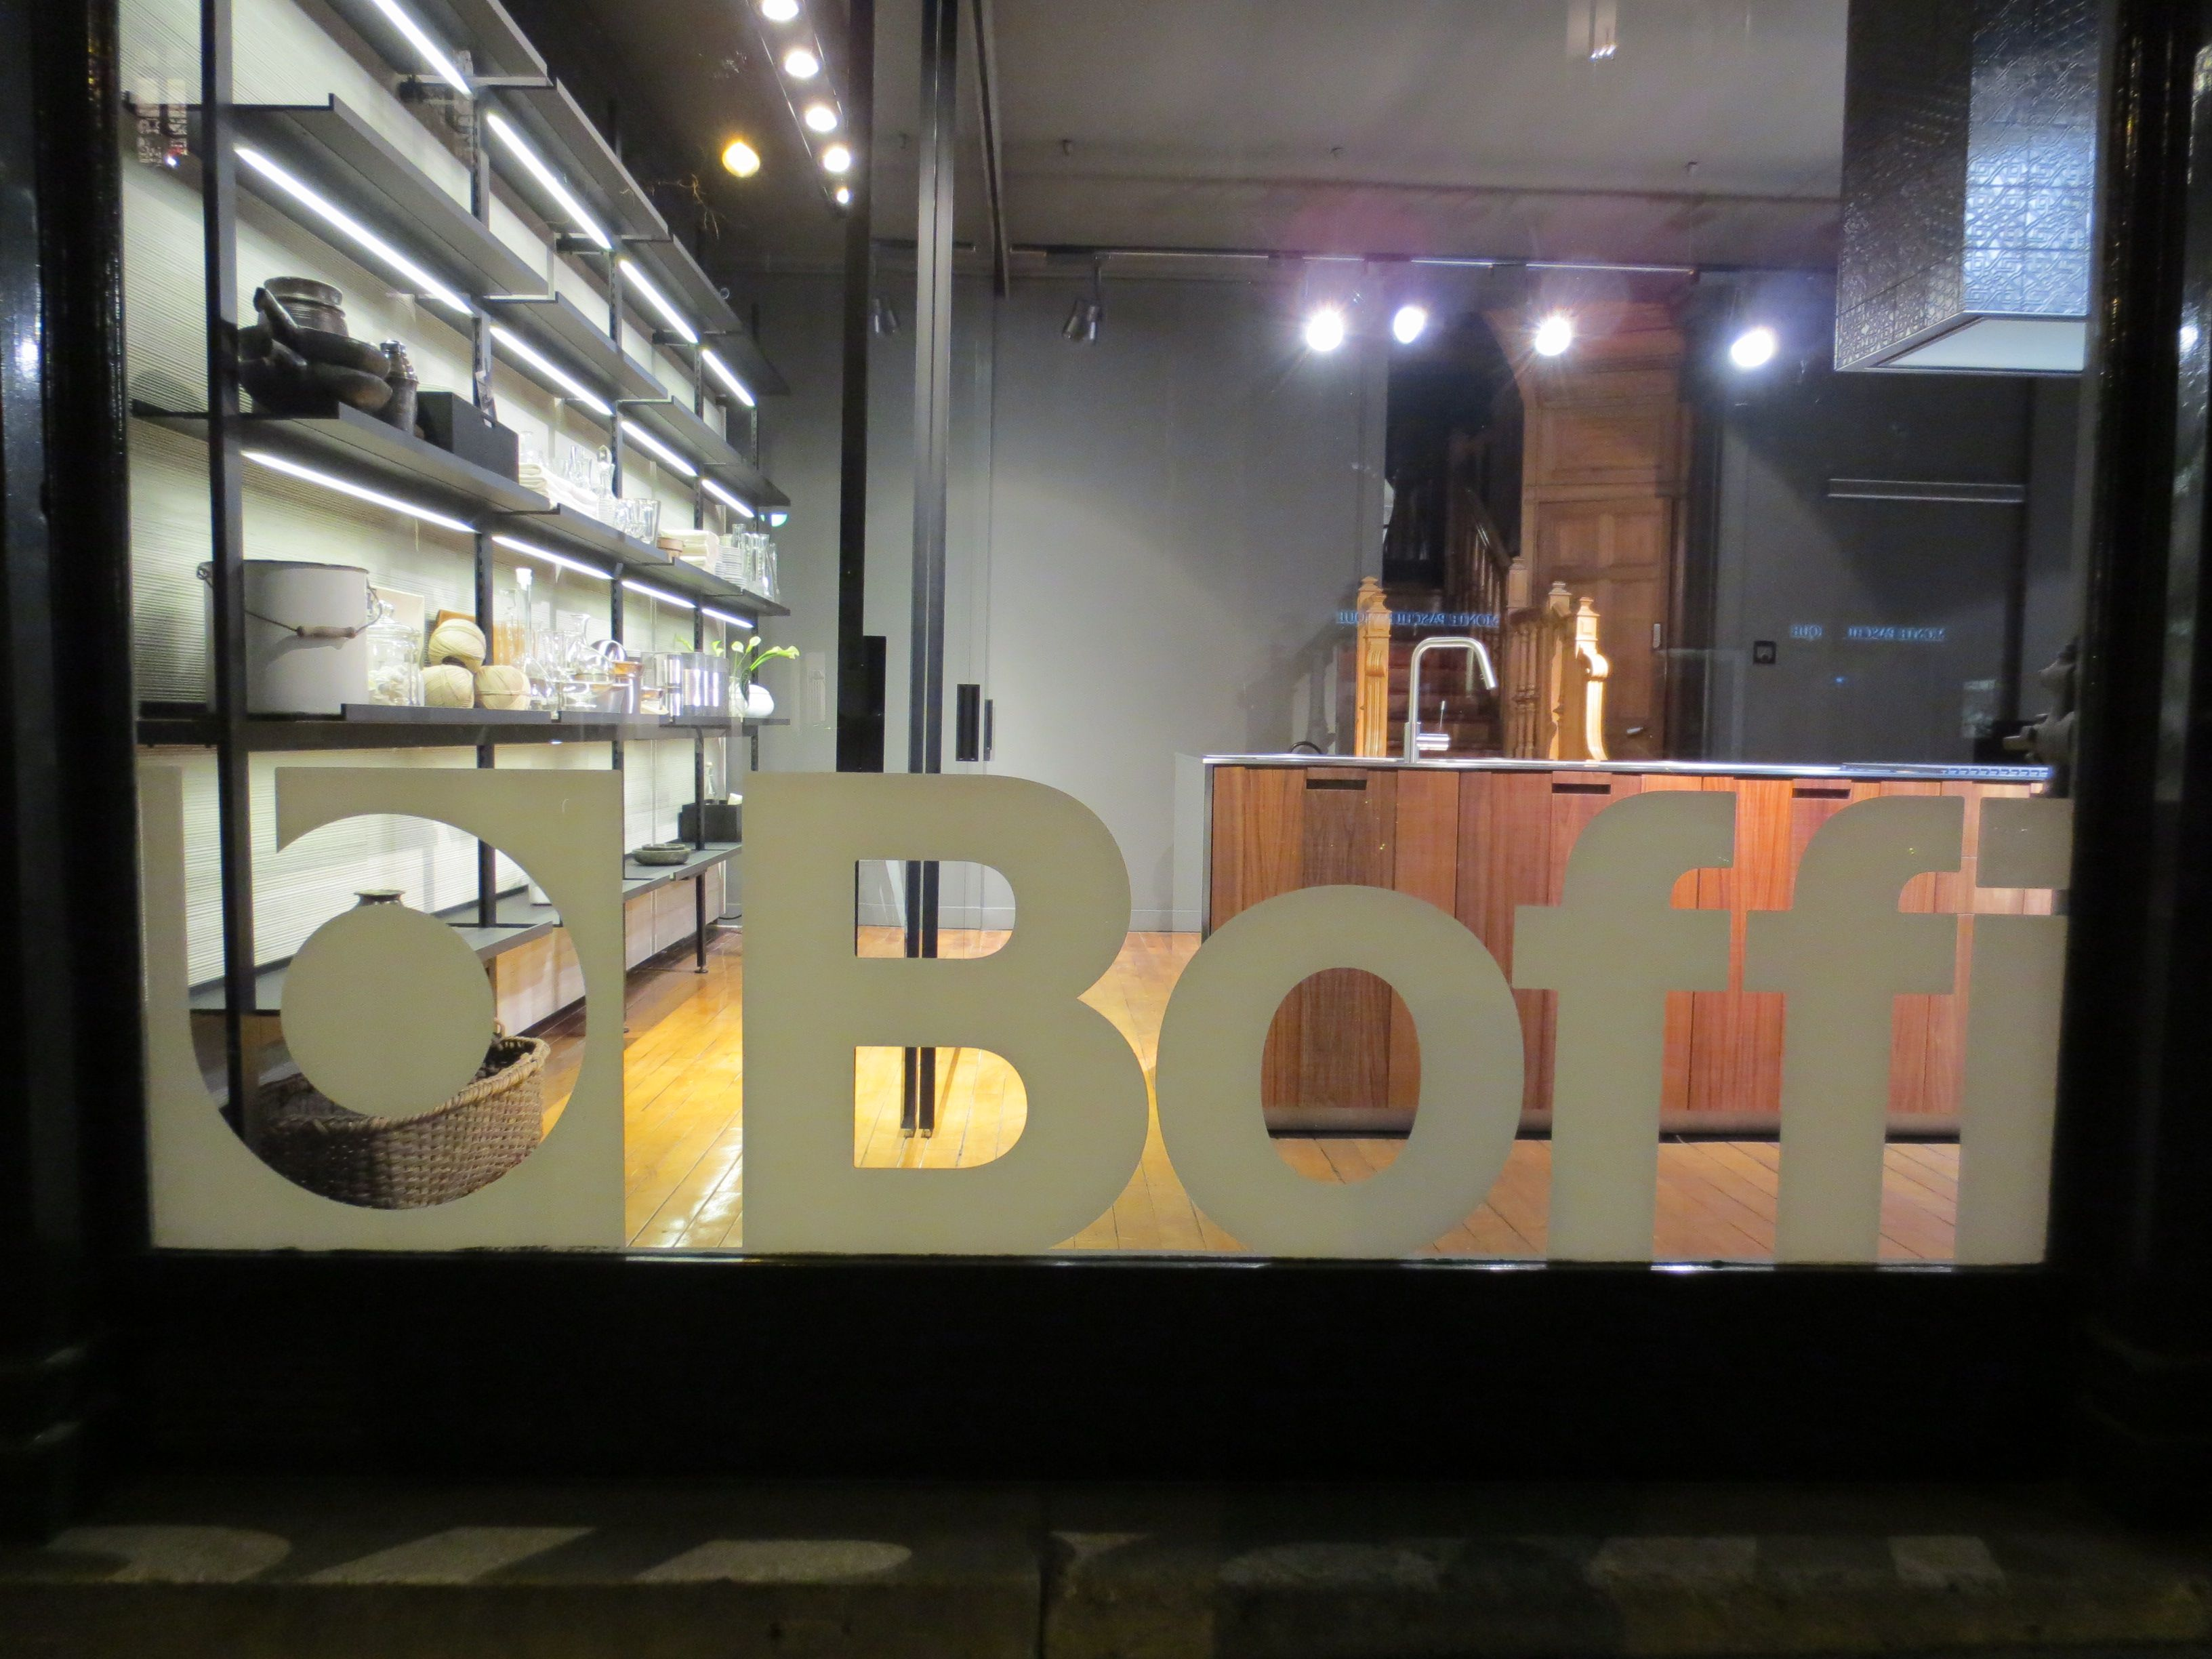 Great Kitchen Design Store. They Also Have A Bath Design Store Part 76